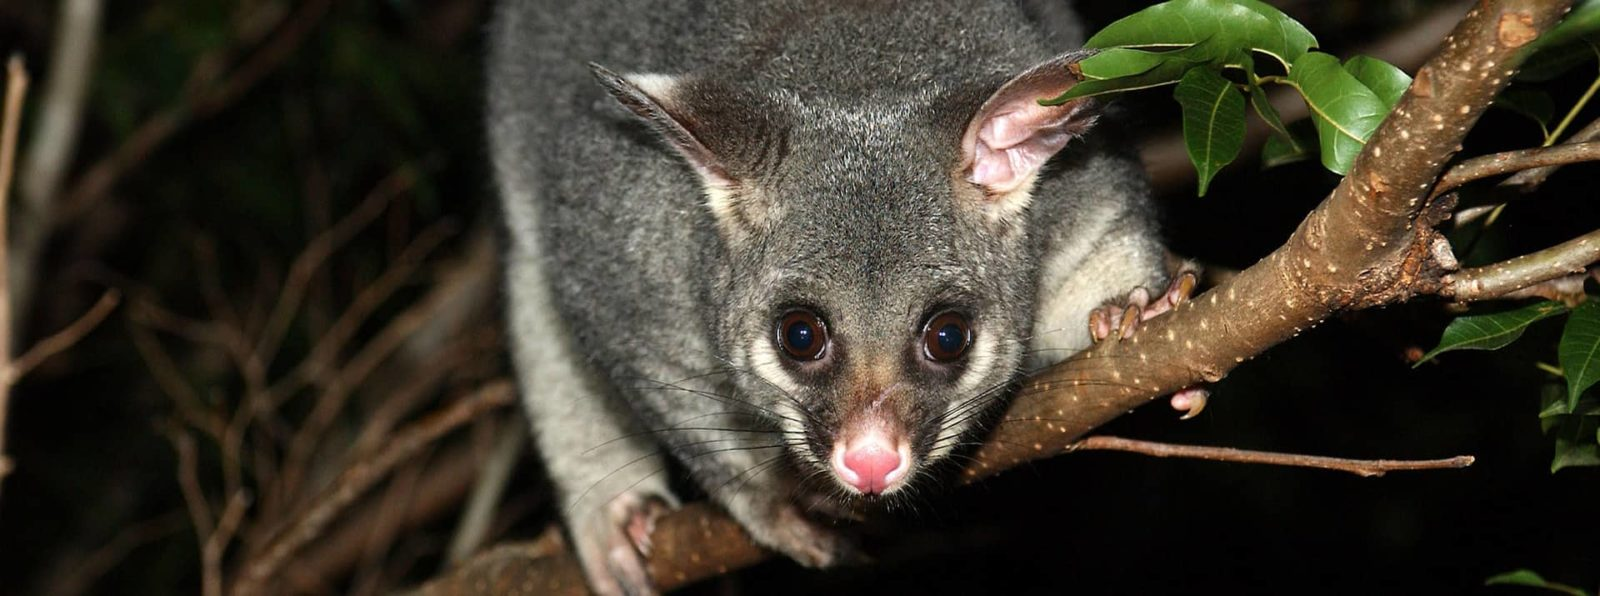 Keeping Possums Away From Your Home This Spring Pesky Possum Pest House Wiring Under Floorboards